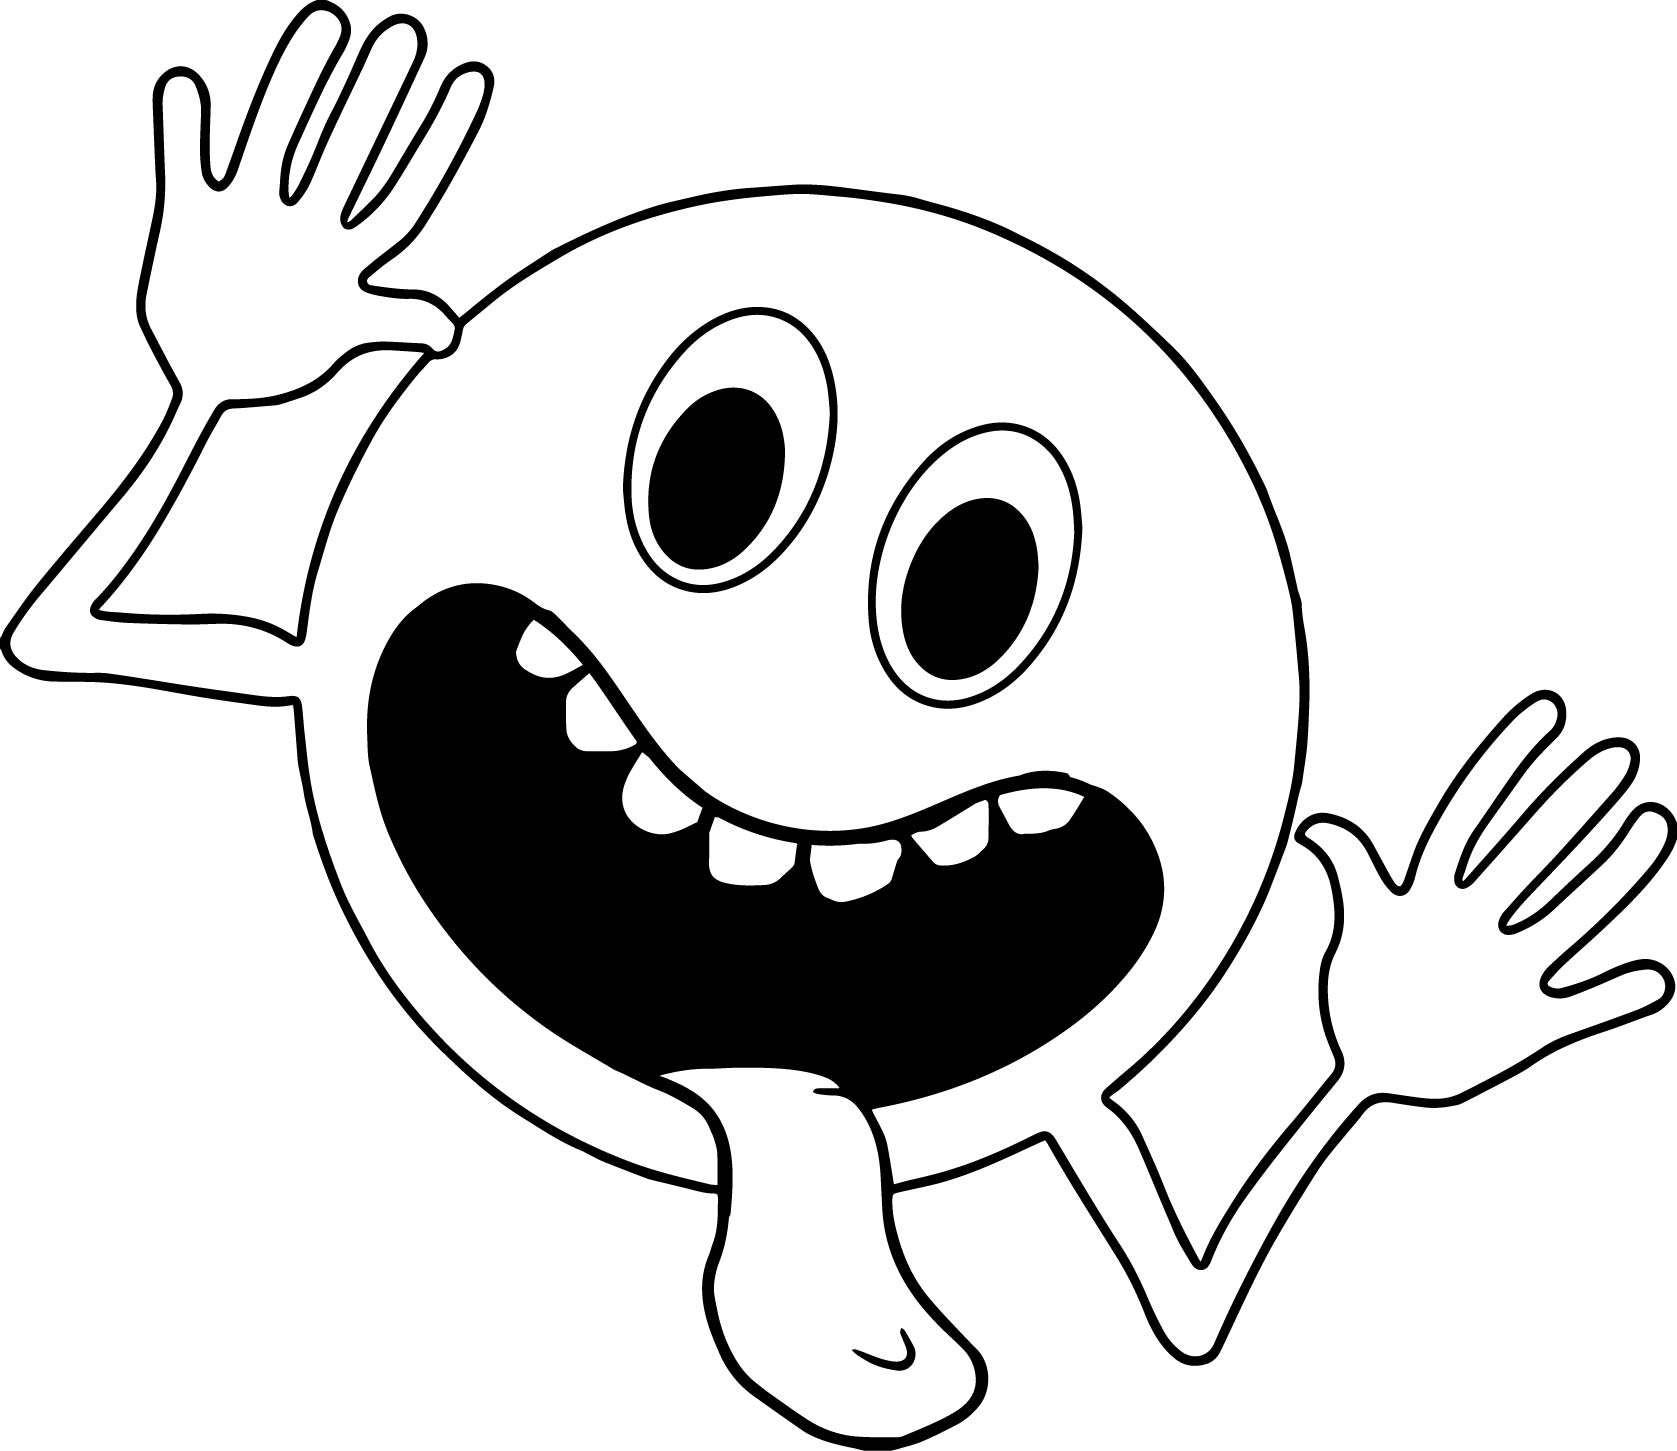 circle comic funny alien face coloring page wecoloringpage